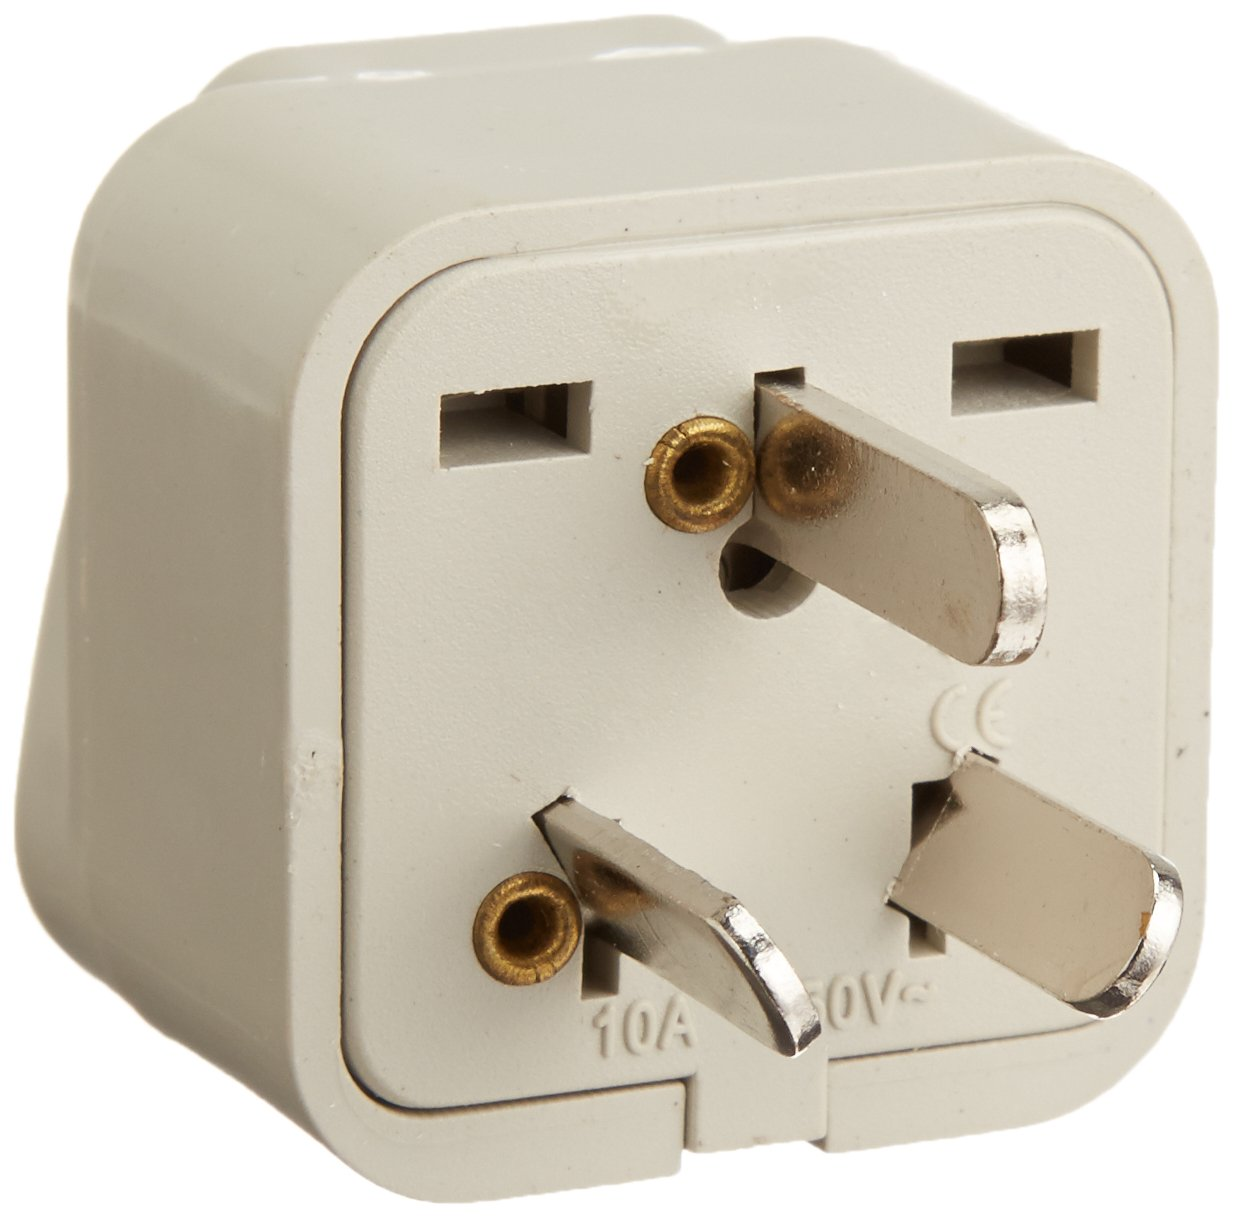 Vct Vp 103 Universal Plug Adapter For Australia New Zealand China Wiring A French 3 Pin Argentinatravel Electric Plugs